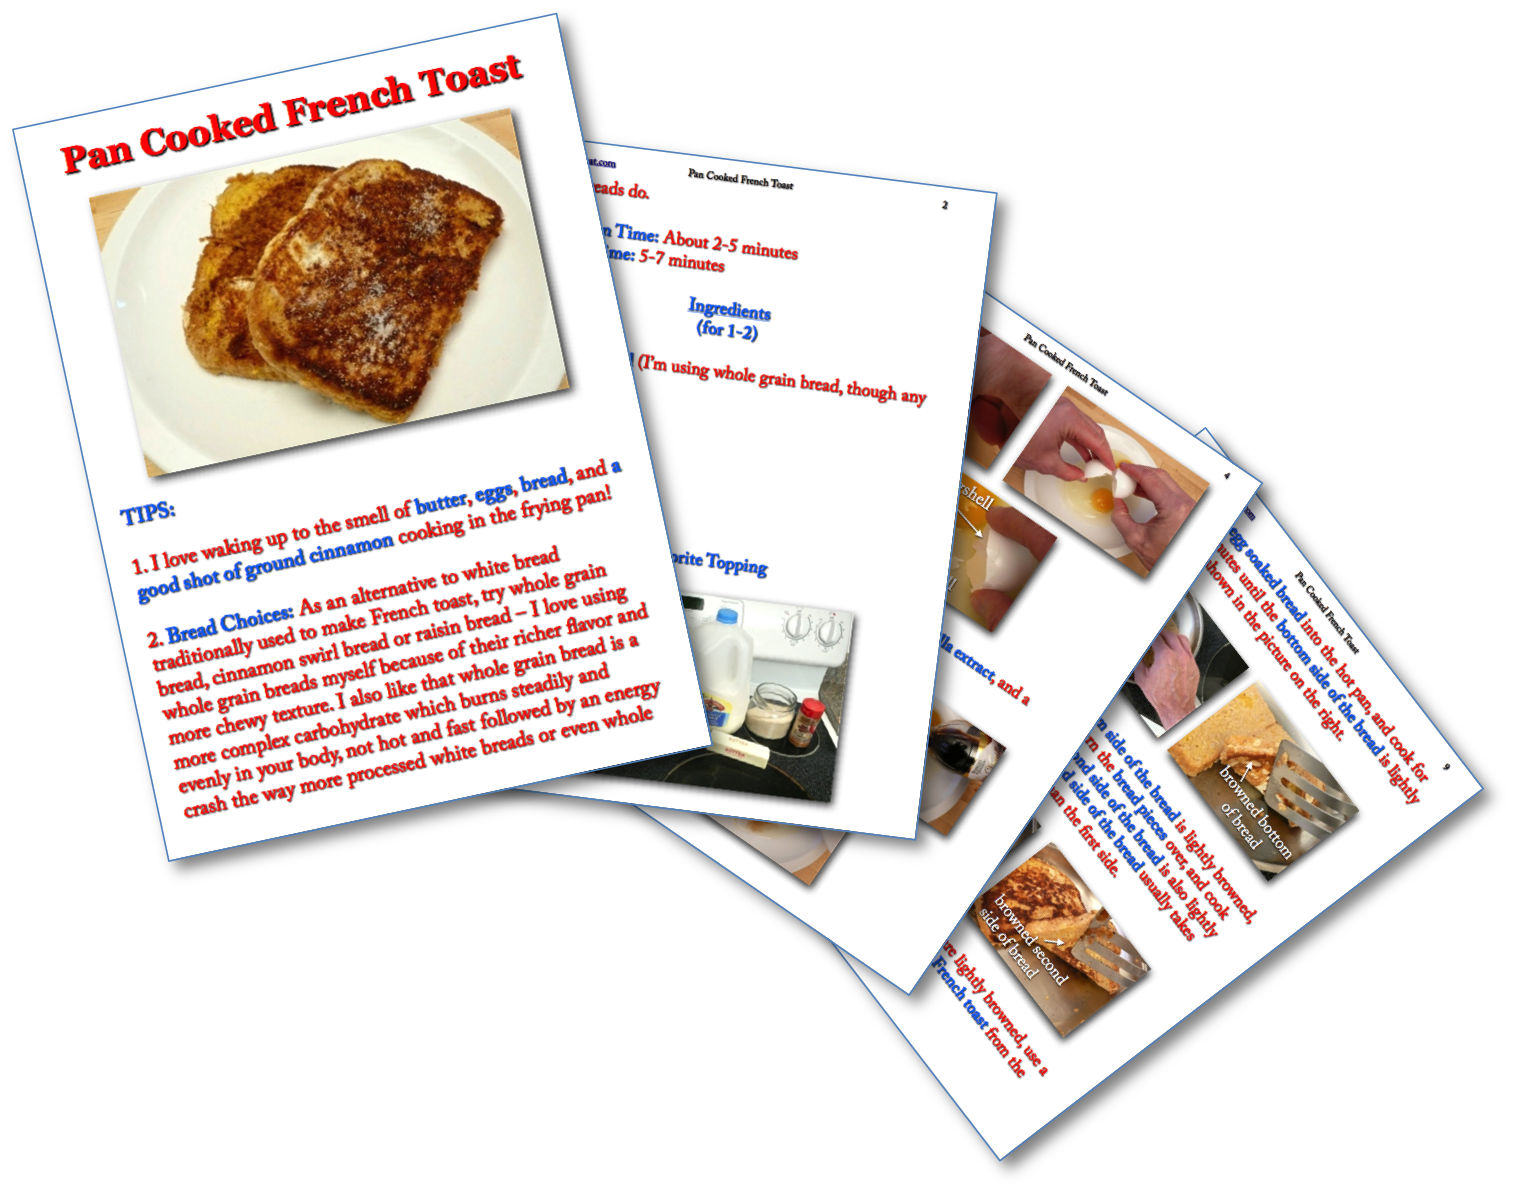 Pan Cooked French Toast Picture Book Recipe